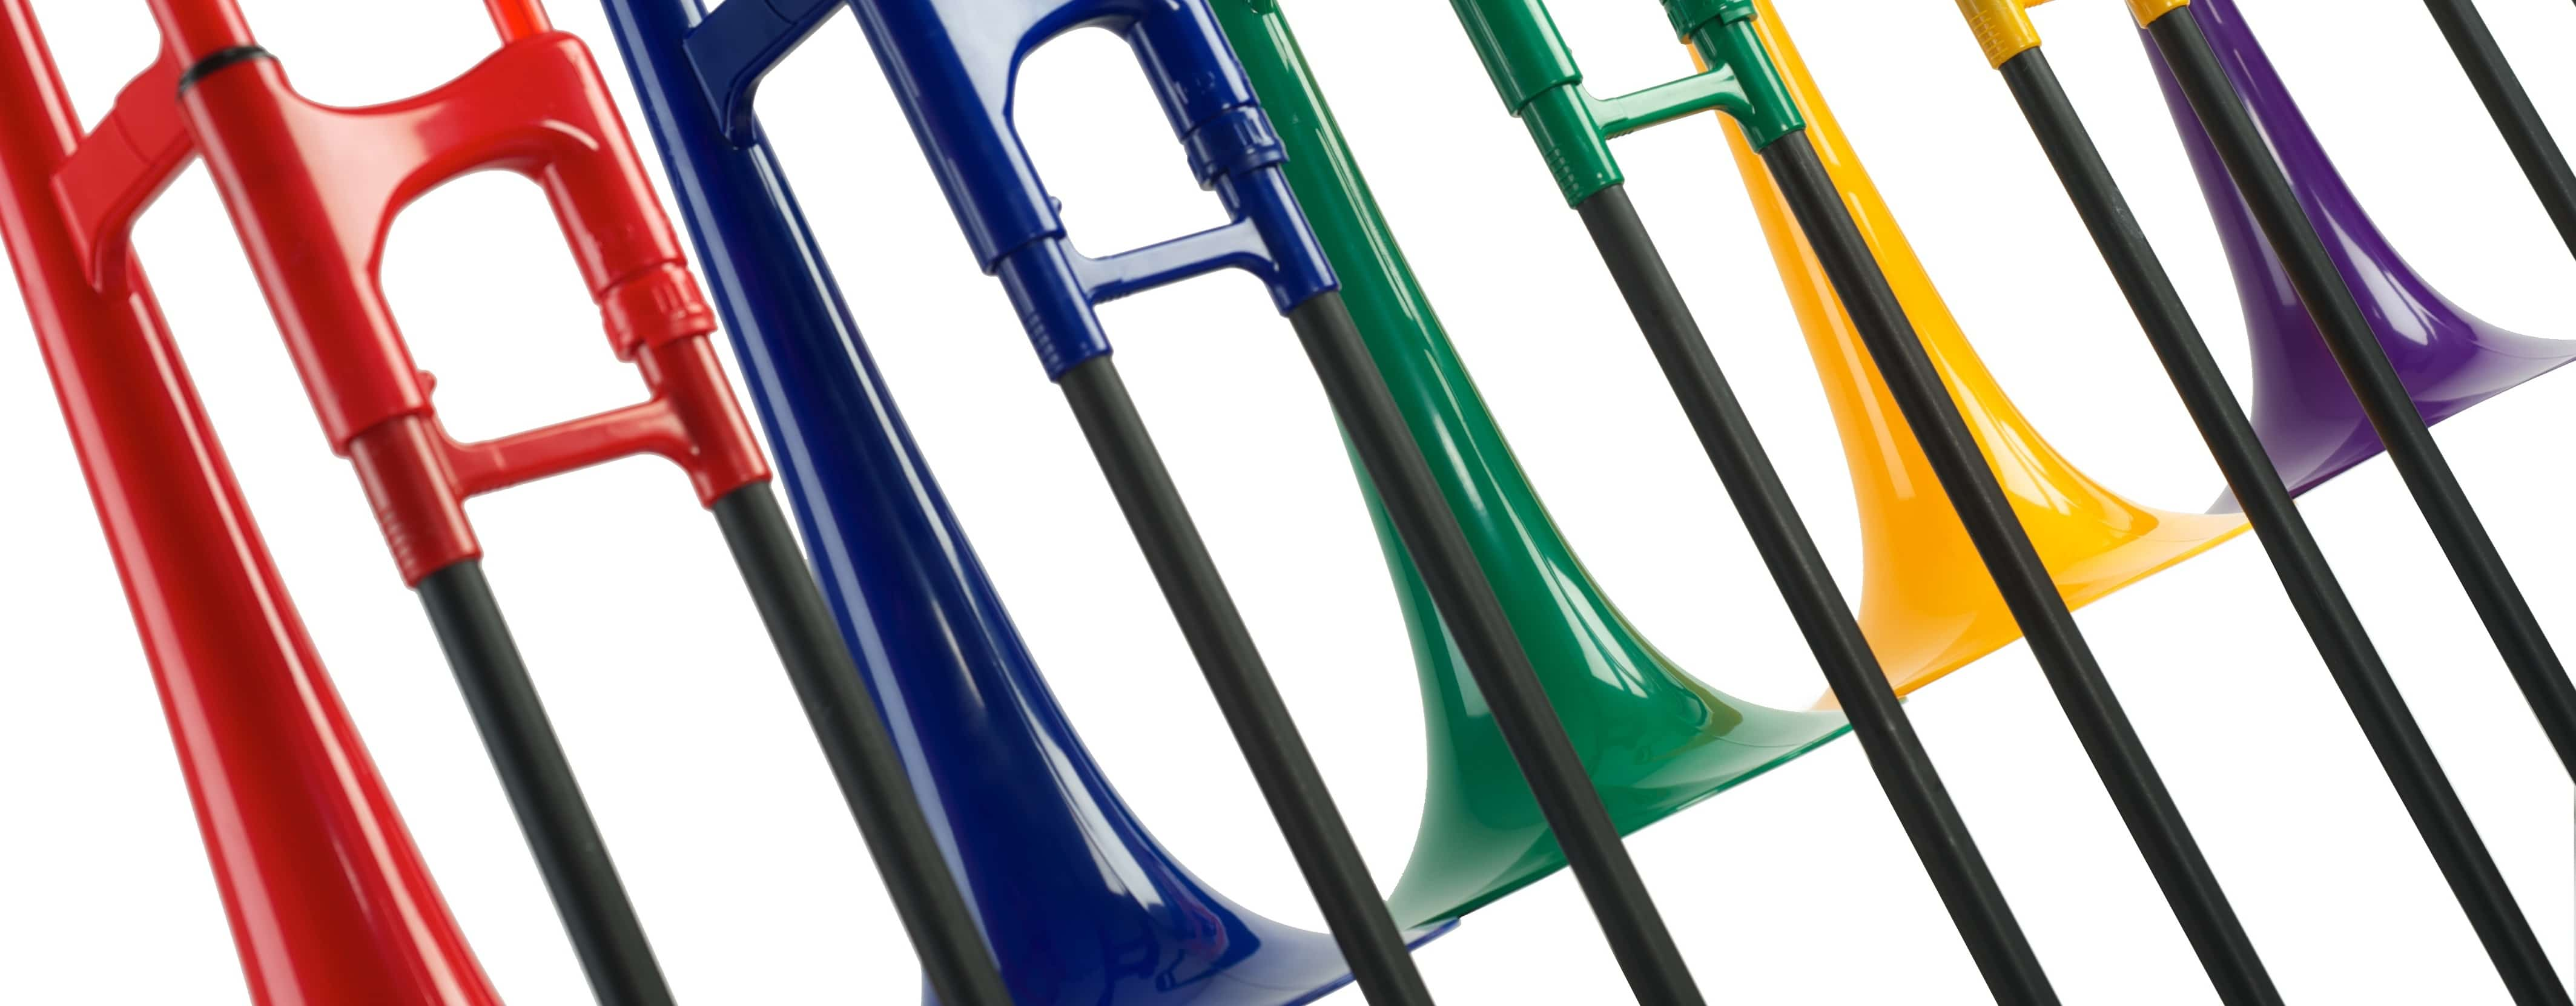 Best Plastic Trumpets Reviewed in Detail [Jan. 2020]